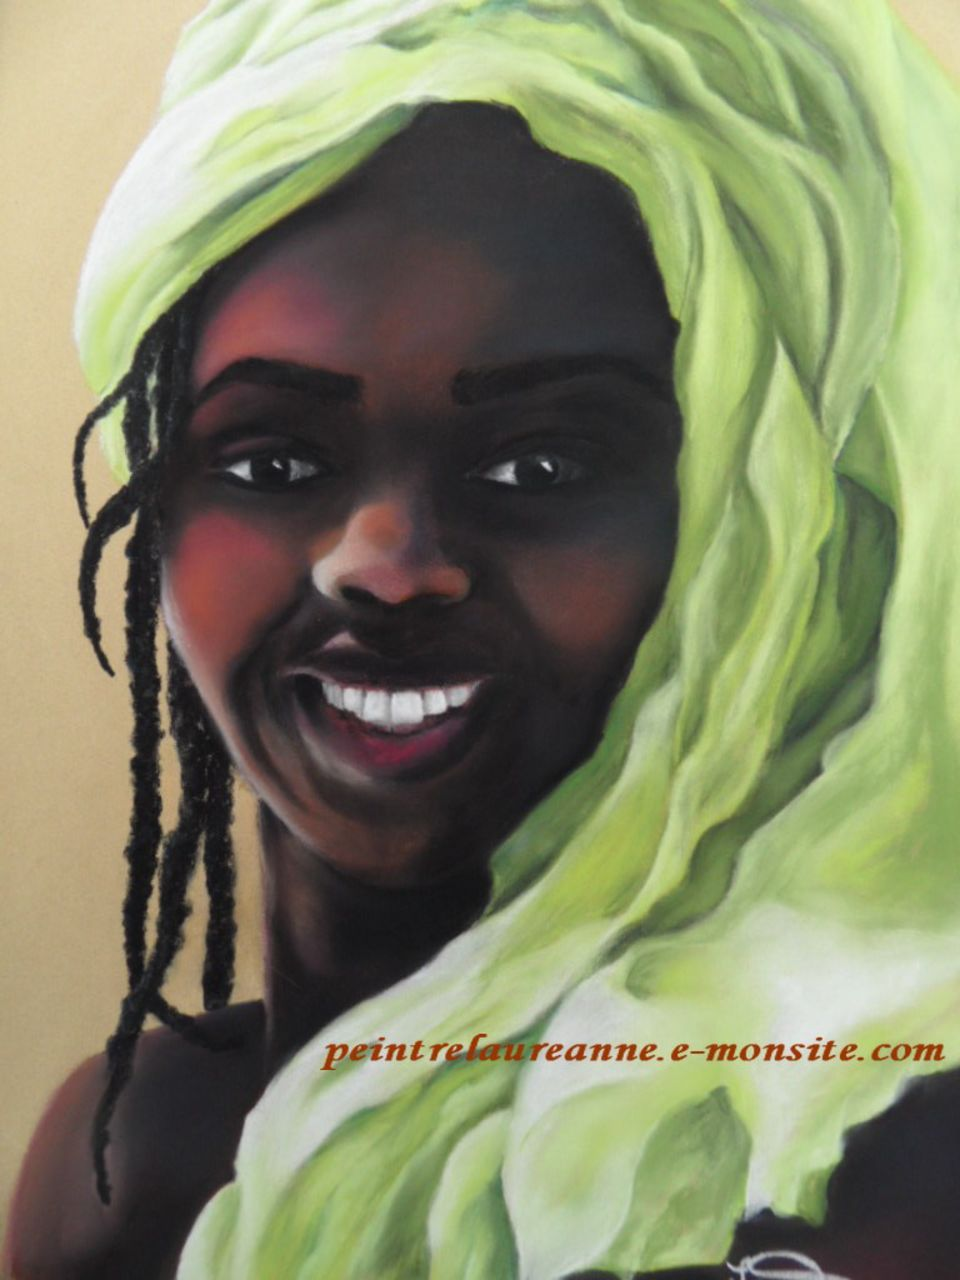 Exceptionnel femme africaine (laure-anne barbier) HI71